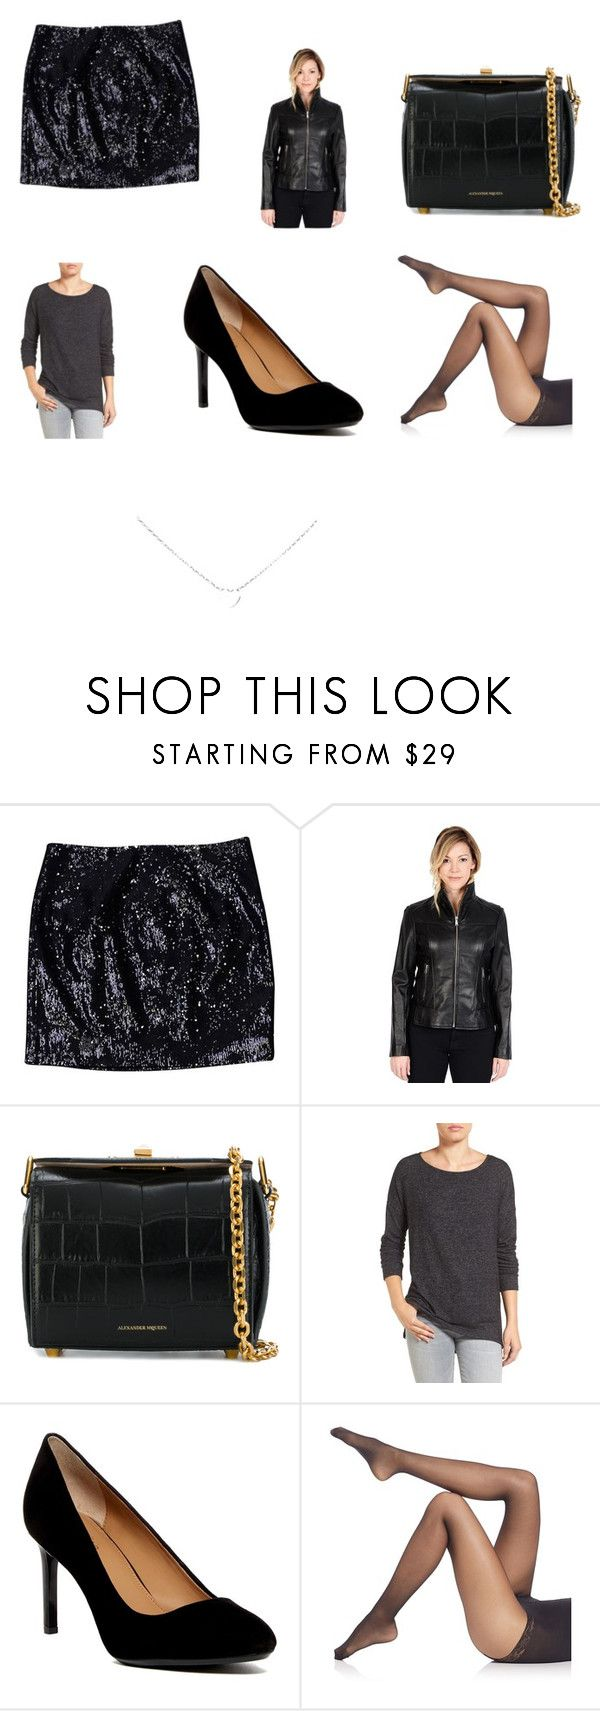 """""""Chelsea Hamill's look at the 2009 Spike Video Game Awards"""" by terrence-michael-clay on Polyvore featuring Michael Kors, Excelled, Alexander McQueen, Gibson, Calvin Klein, Falke, imgrc and tbm"""